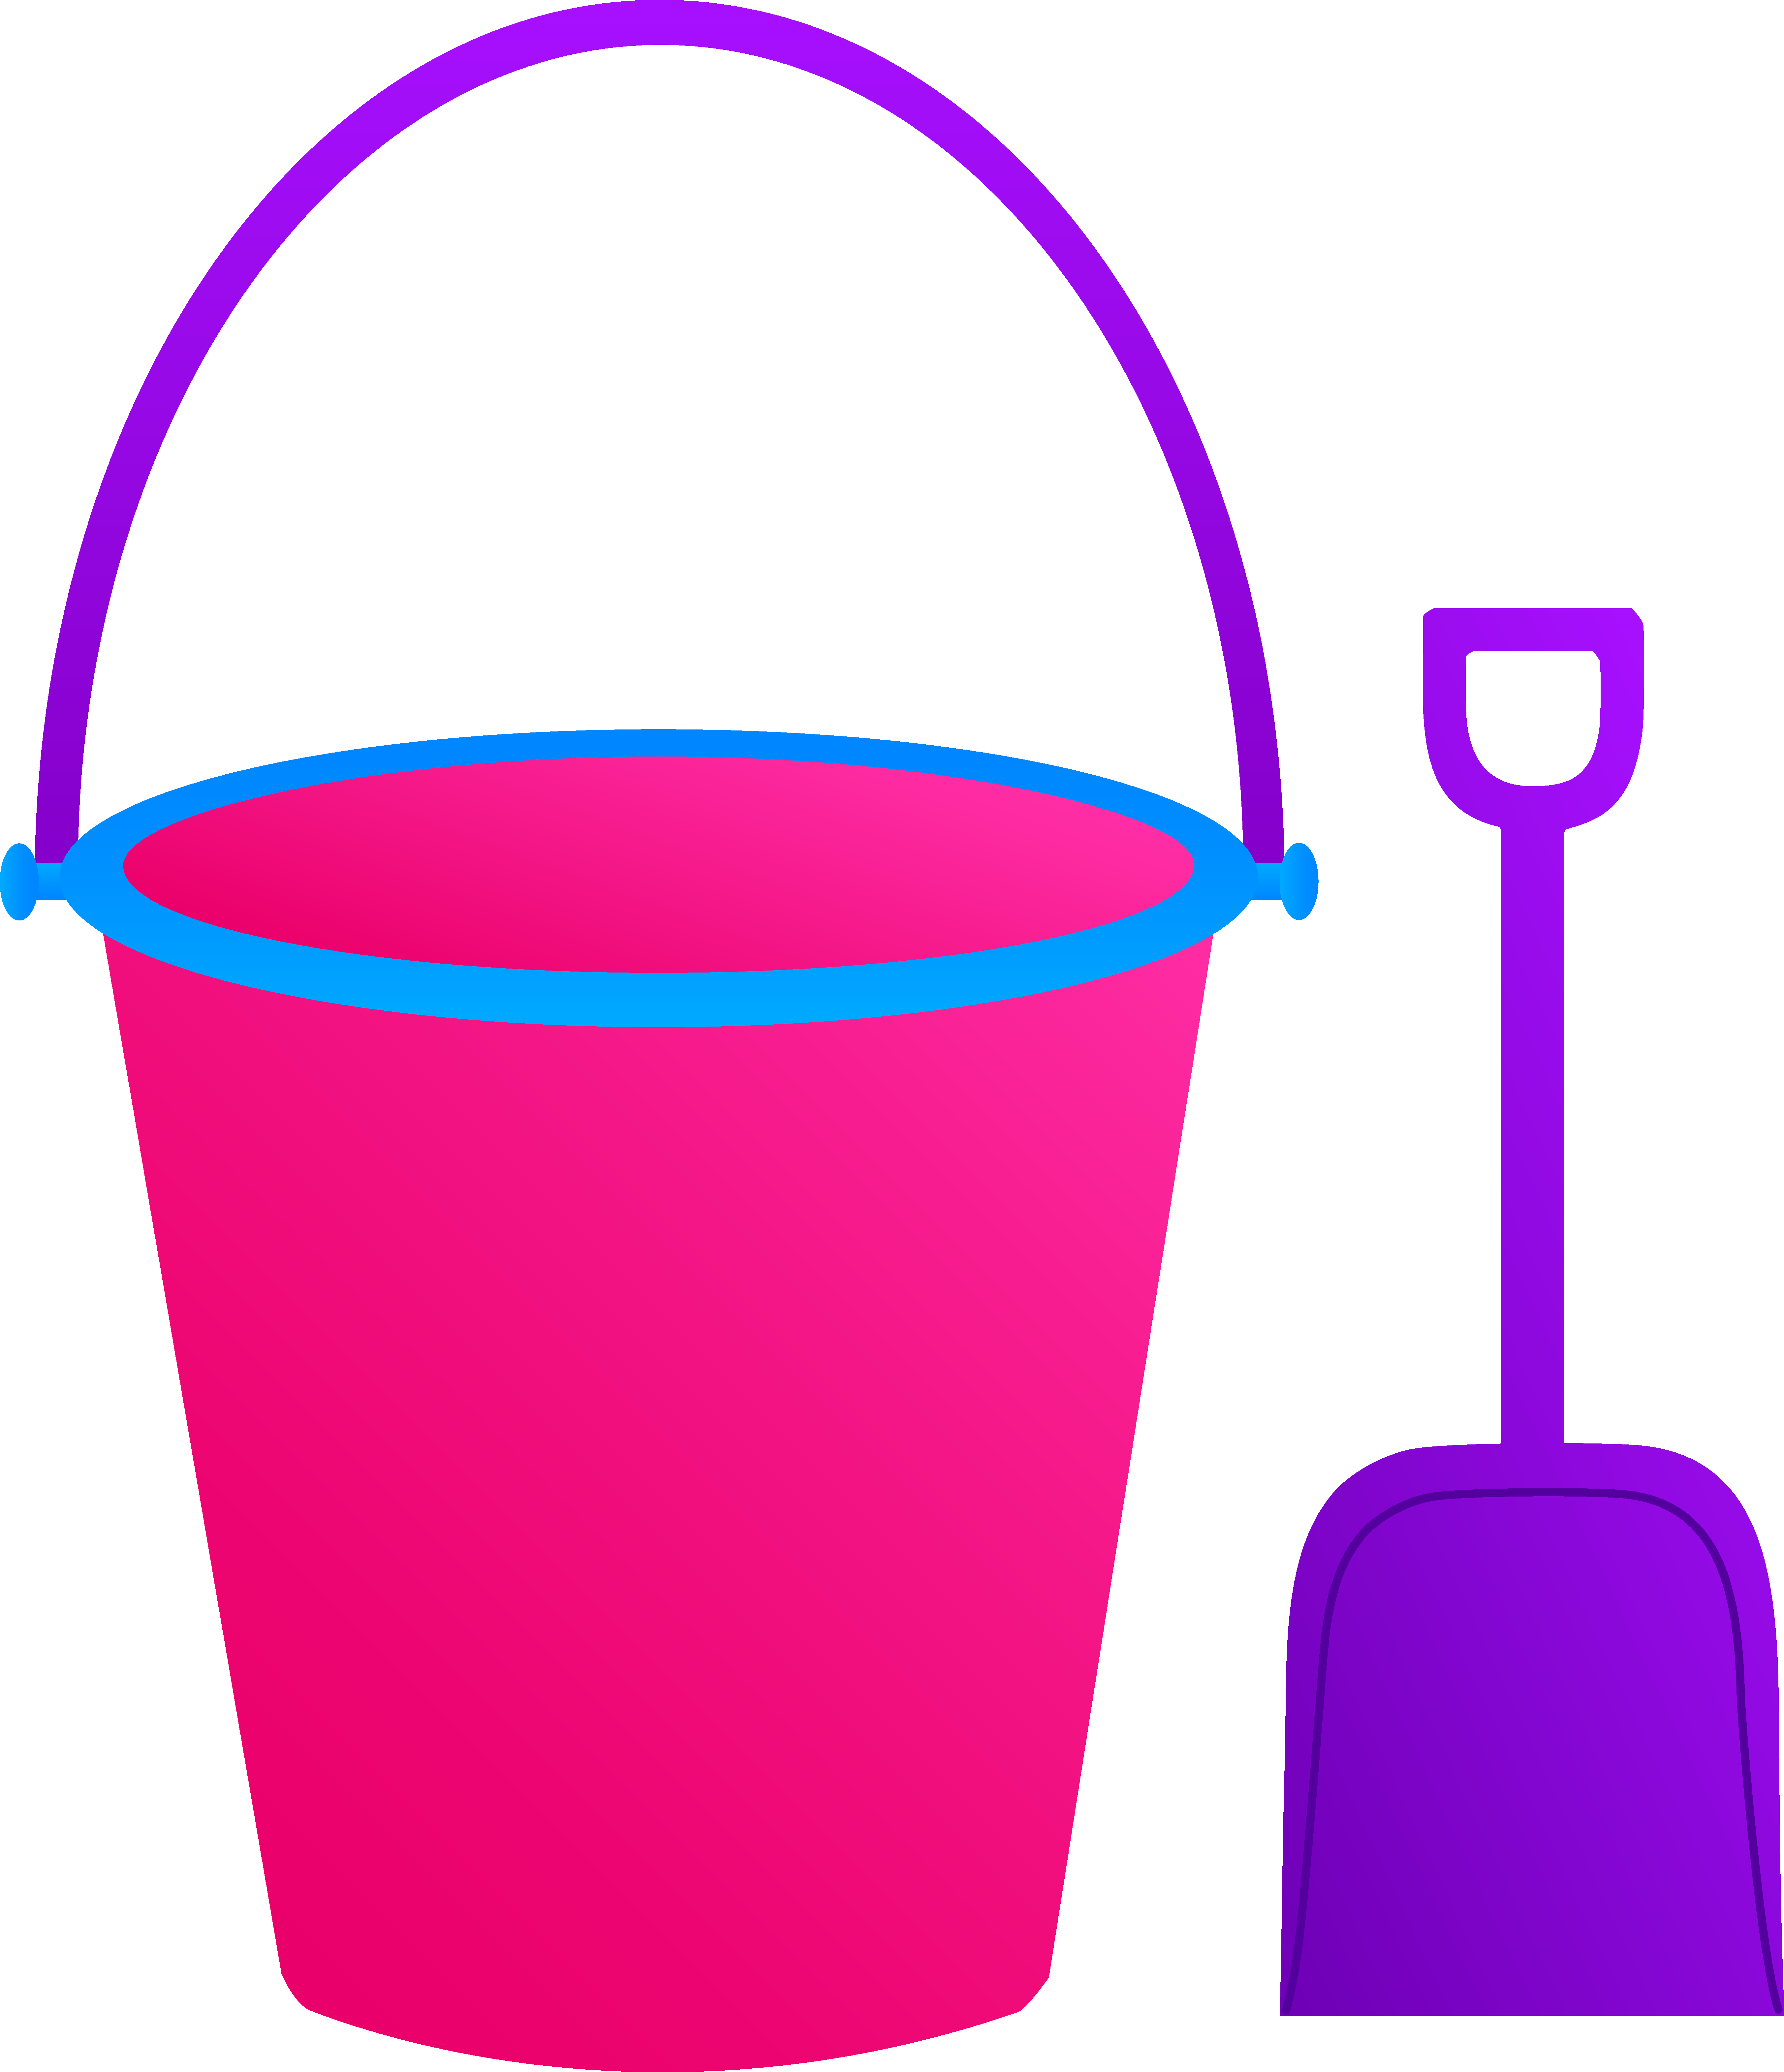 Beach buckets clipart png free vector download Free Sand Bucket Cliparts, Download Free Clip Art, Free Clip Art on ... vector download